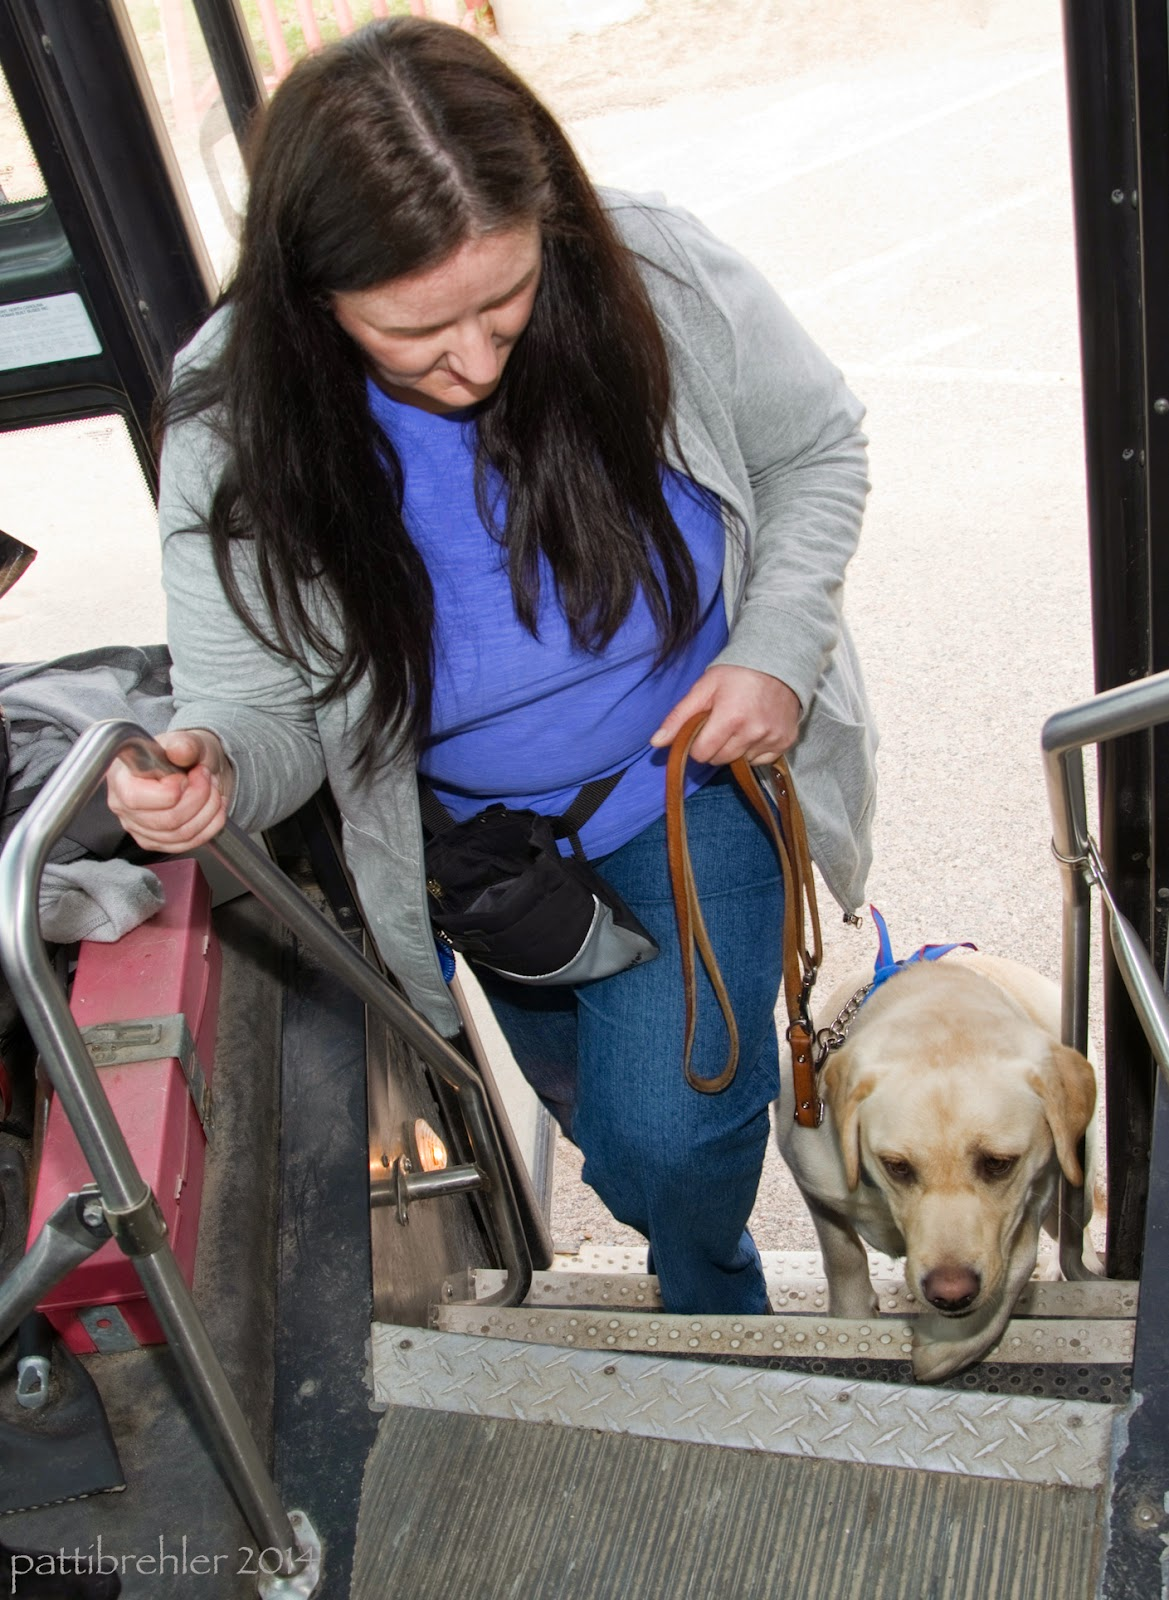 This photo is shot from inside the school bus looking down the stairs. A woman with long brown hair wearing blue jeans, a light purple shirt with a gray zippered sweathshirt open over it, is stepping up and holding the railing with her right hand. She is holding a leash in her left hand, attached to a yellow lab who is stepping up the steps with her. The woman is looking down at the dog. She also has a black treat bag around her waist.